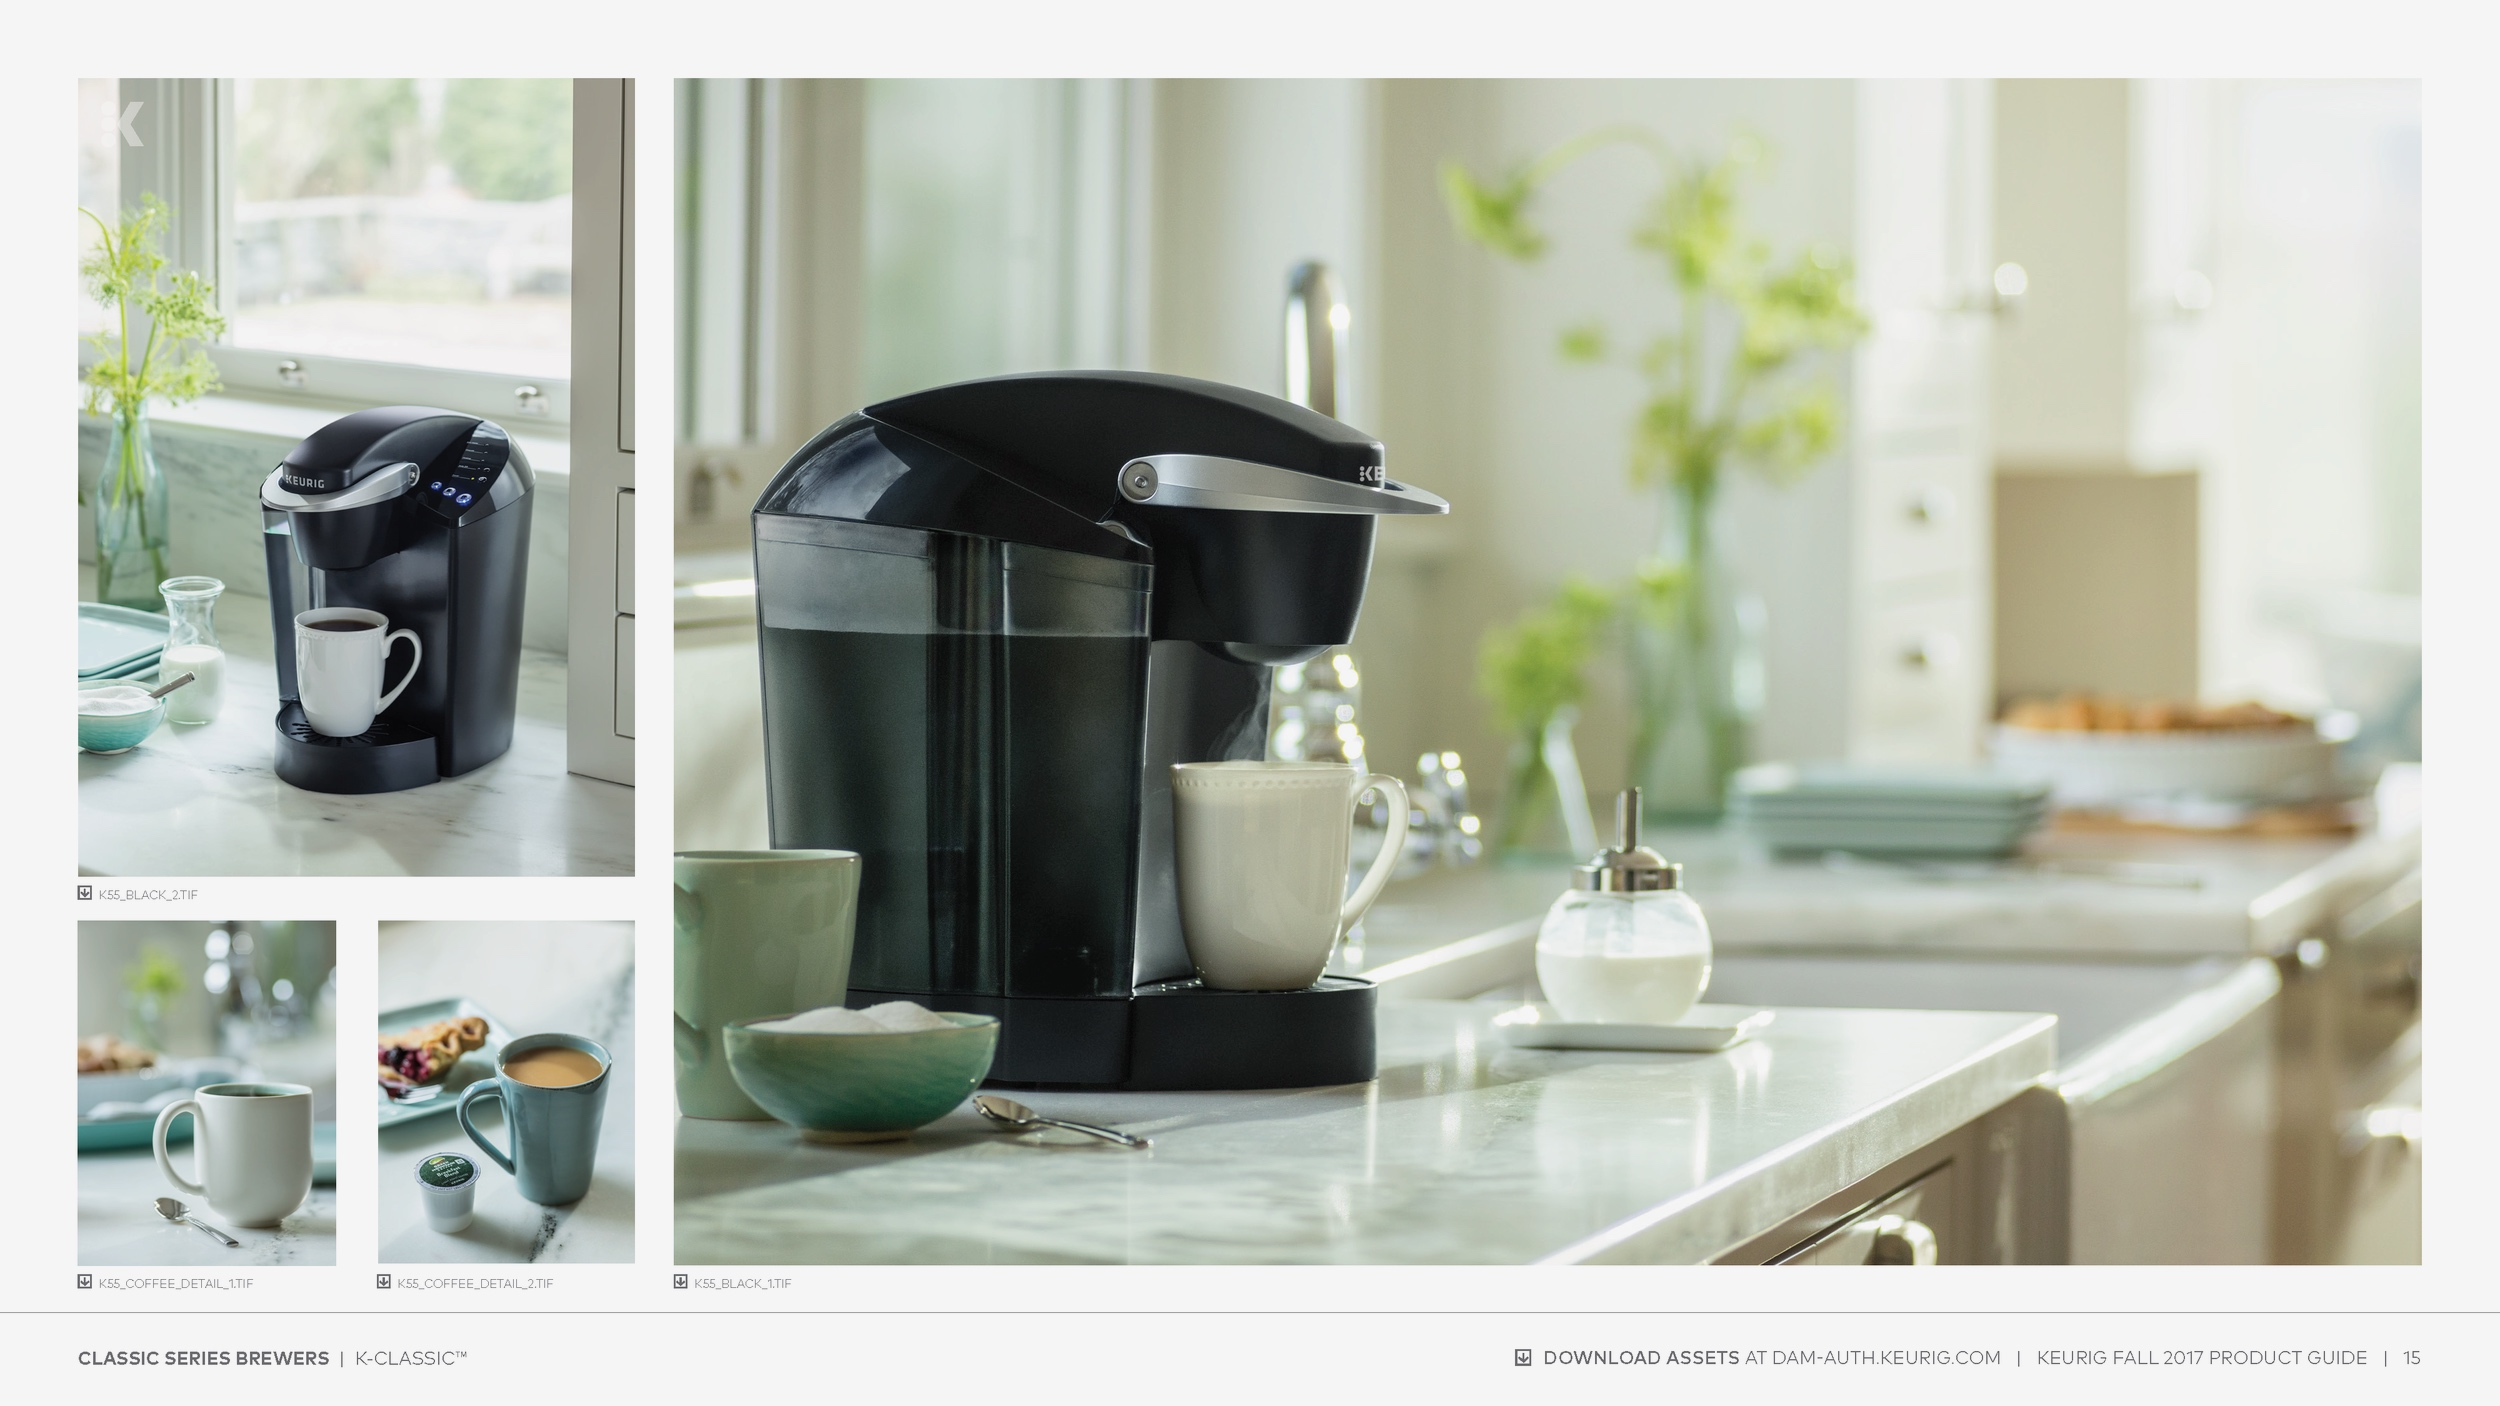 keurig_product_guide_F17_R8_Page_15.png